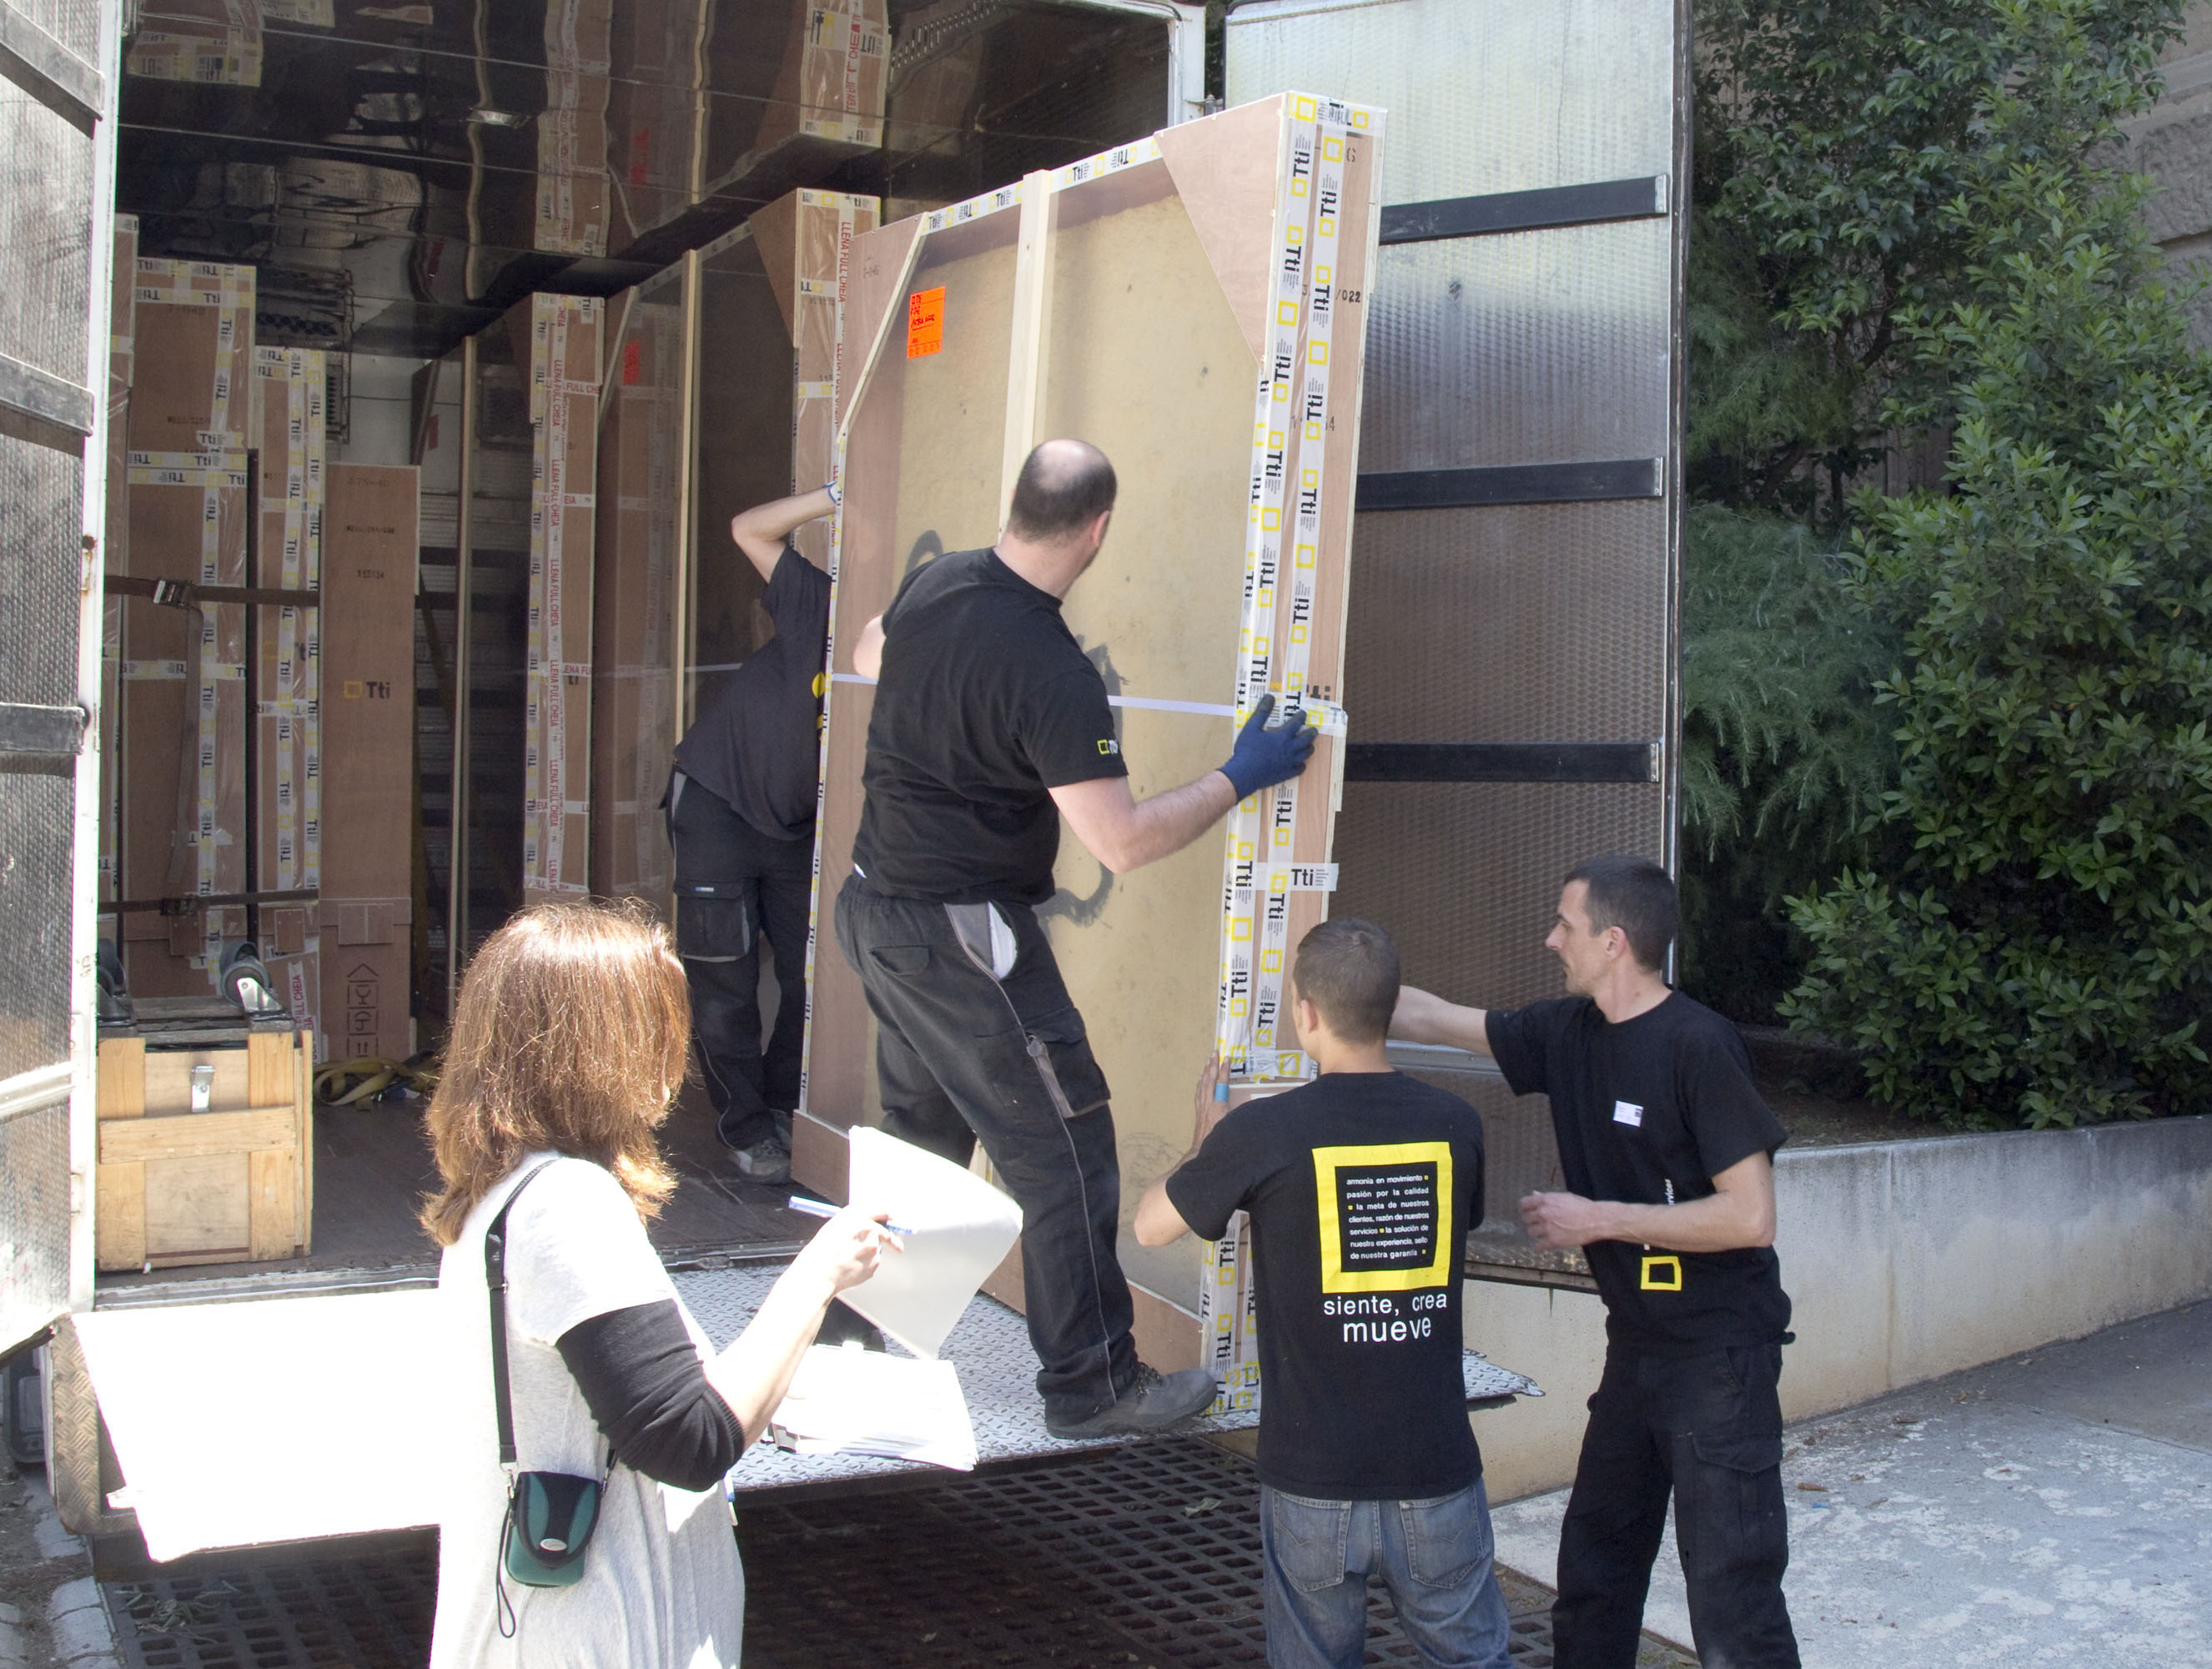 Control of packaging when unloading artworks of a truck